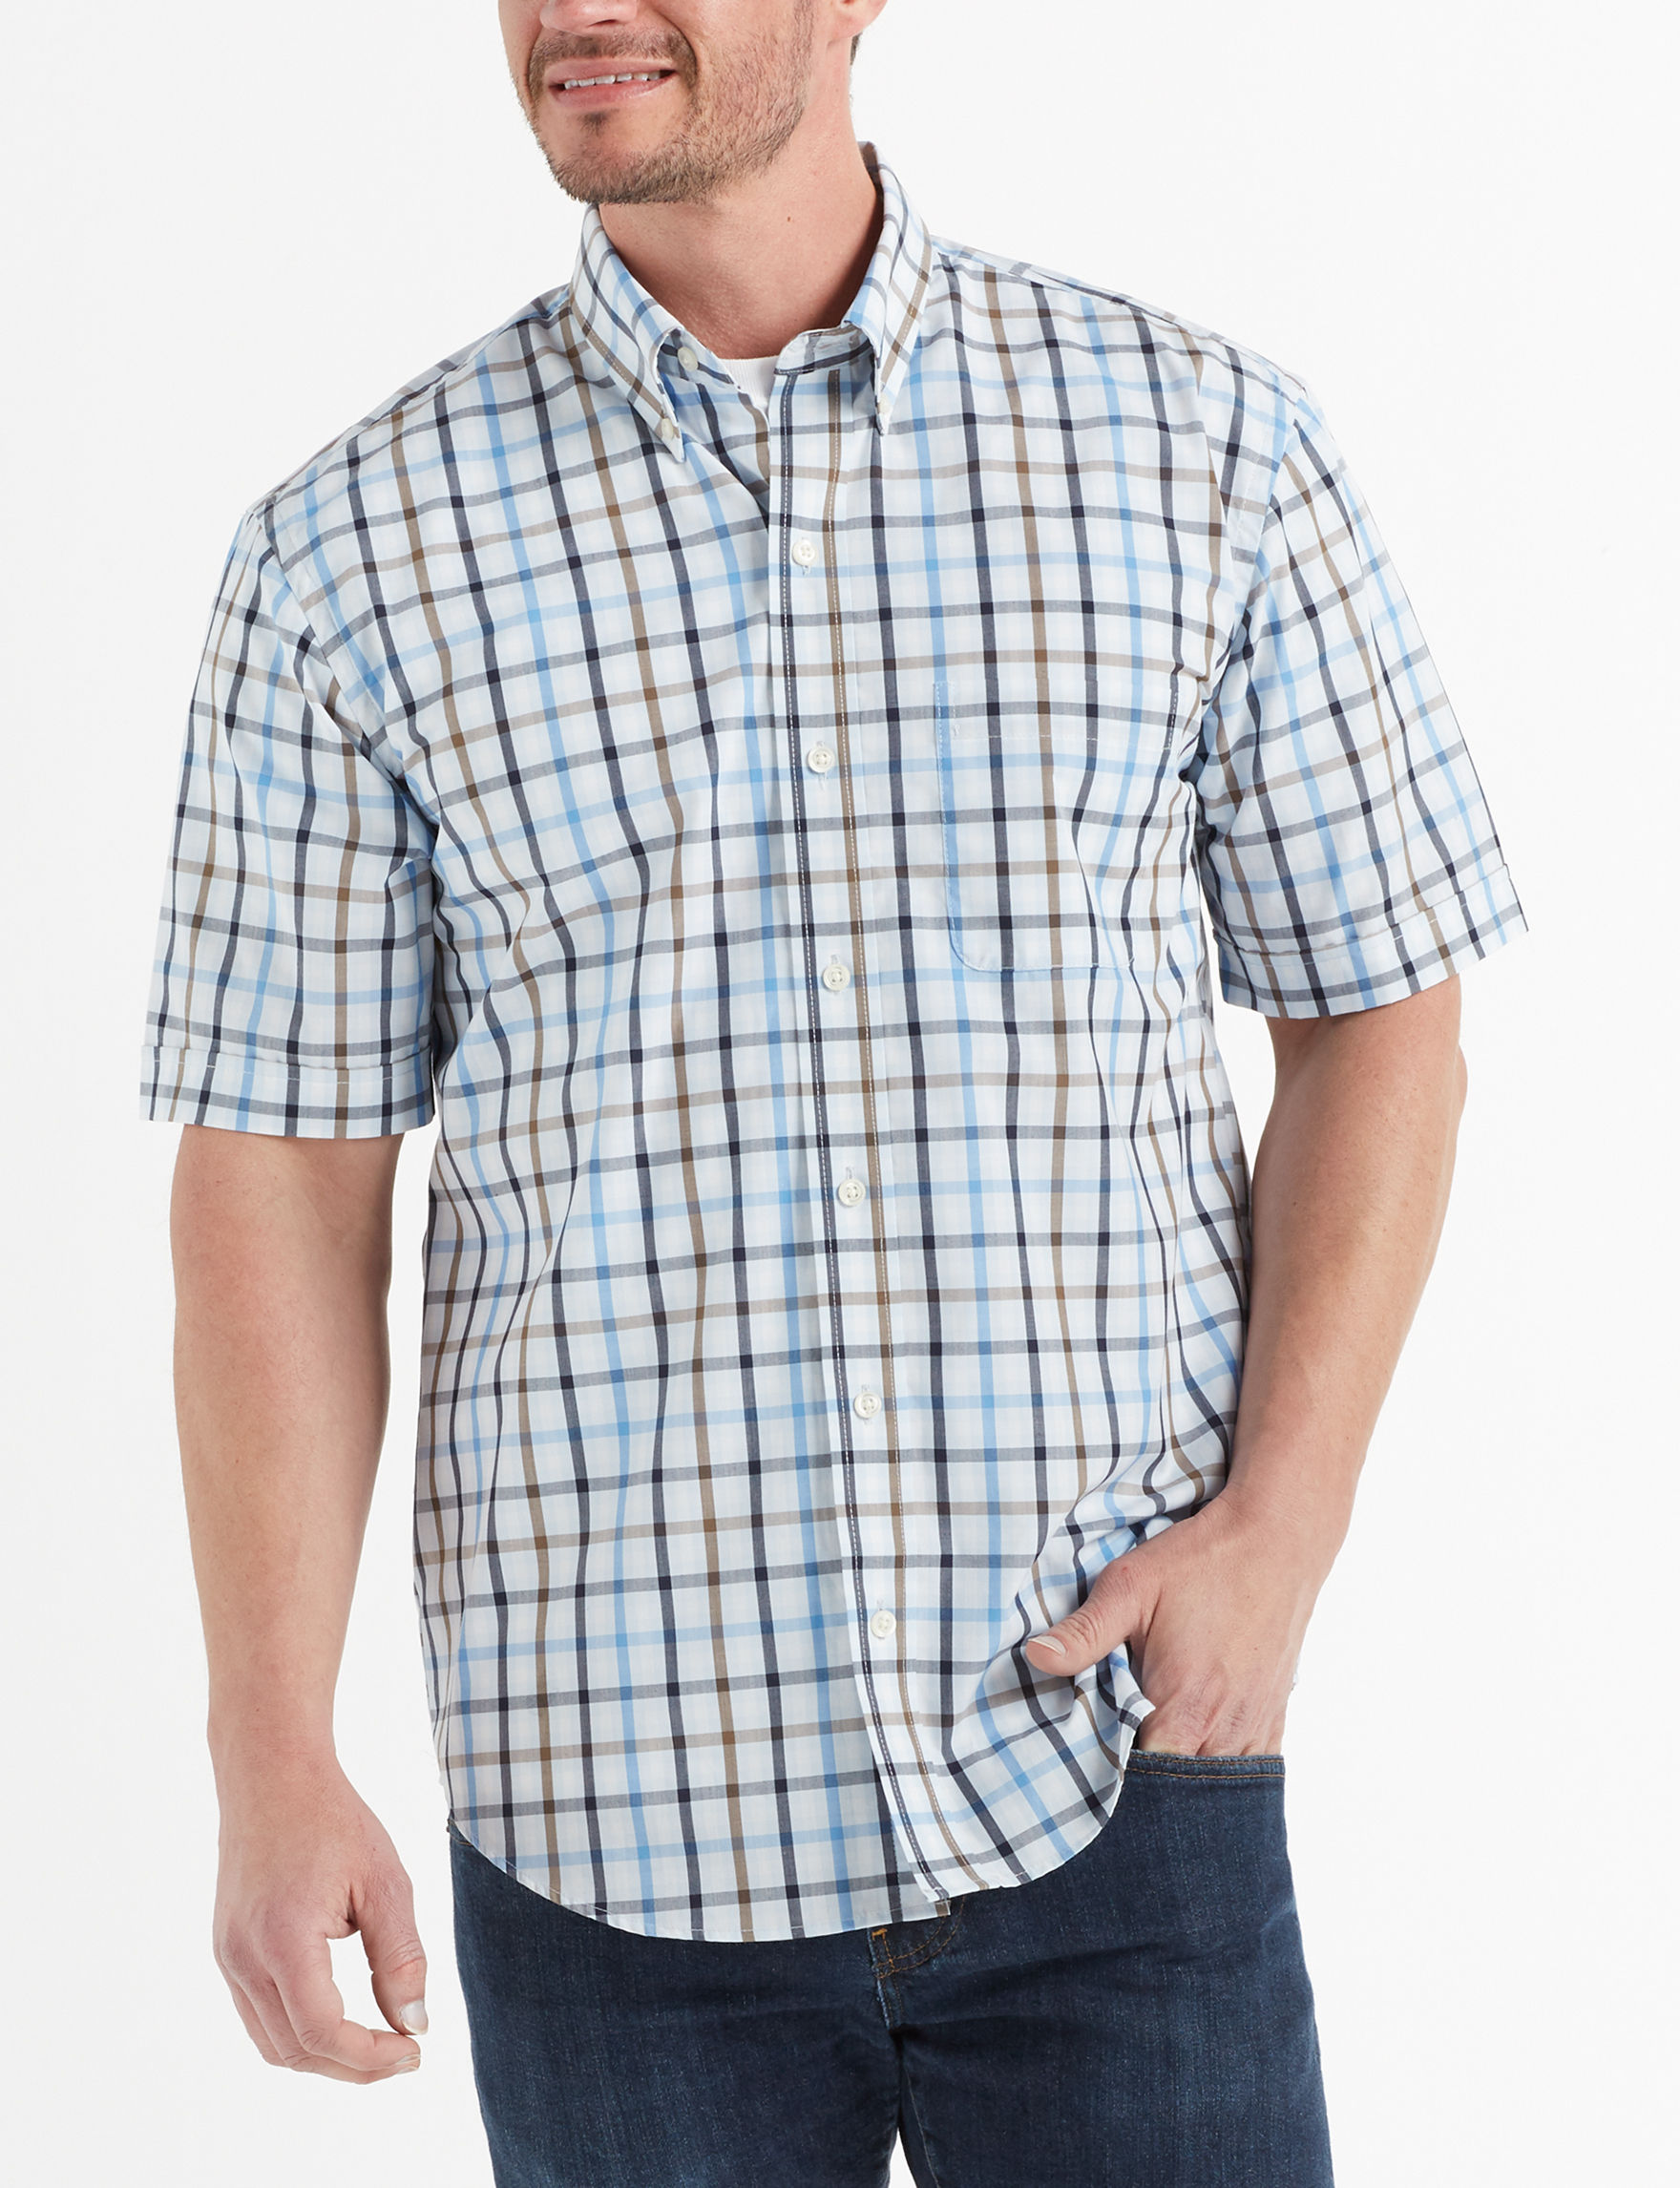 Arrow Sapphire Ice Casual Button Down Shirts